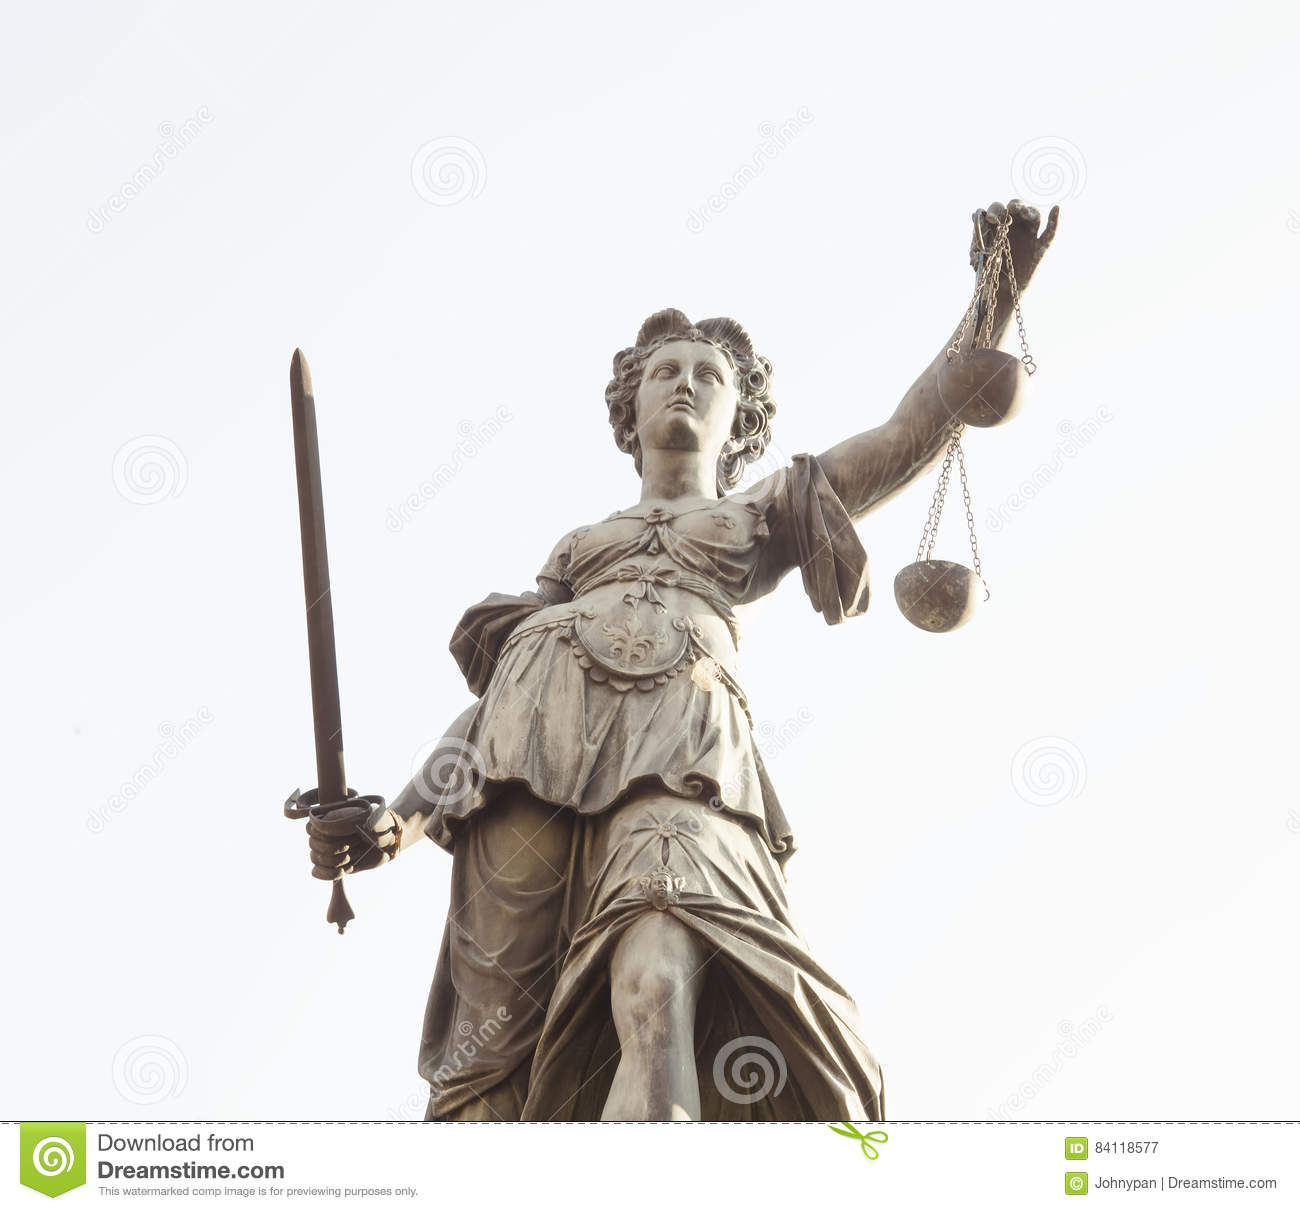 Lady Justice statue in Frankfurt am Main city, Germany